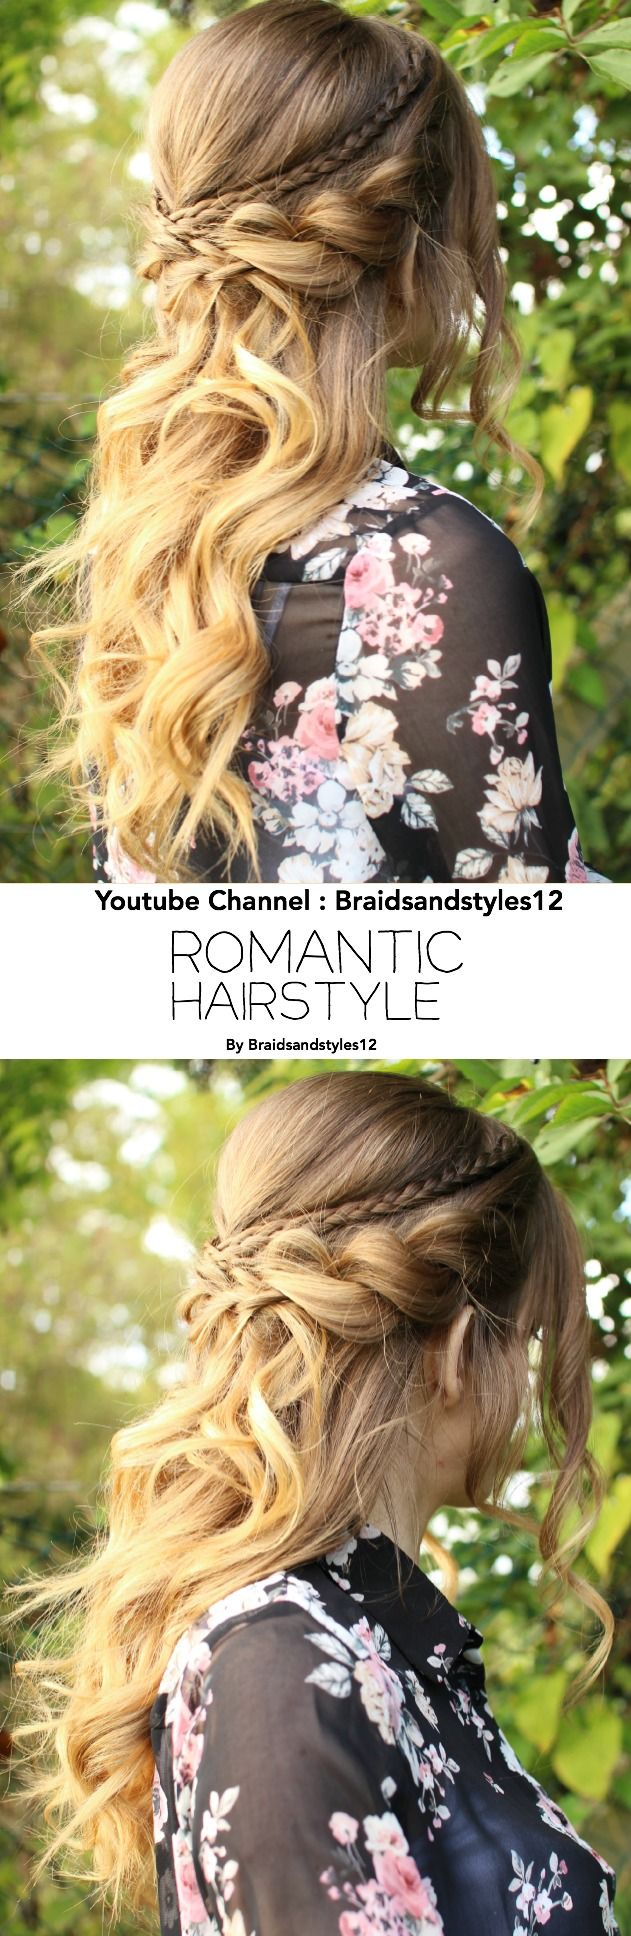 Beautiful, romantic half up half down hairstyle with Curls by Braidsandstyles12…